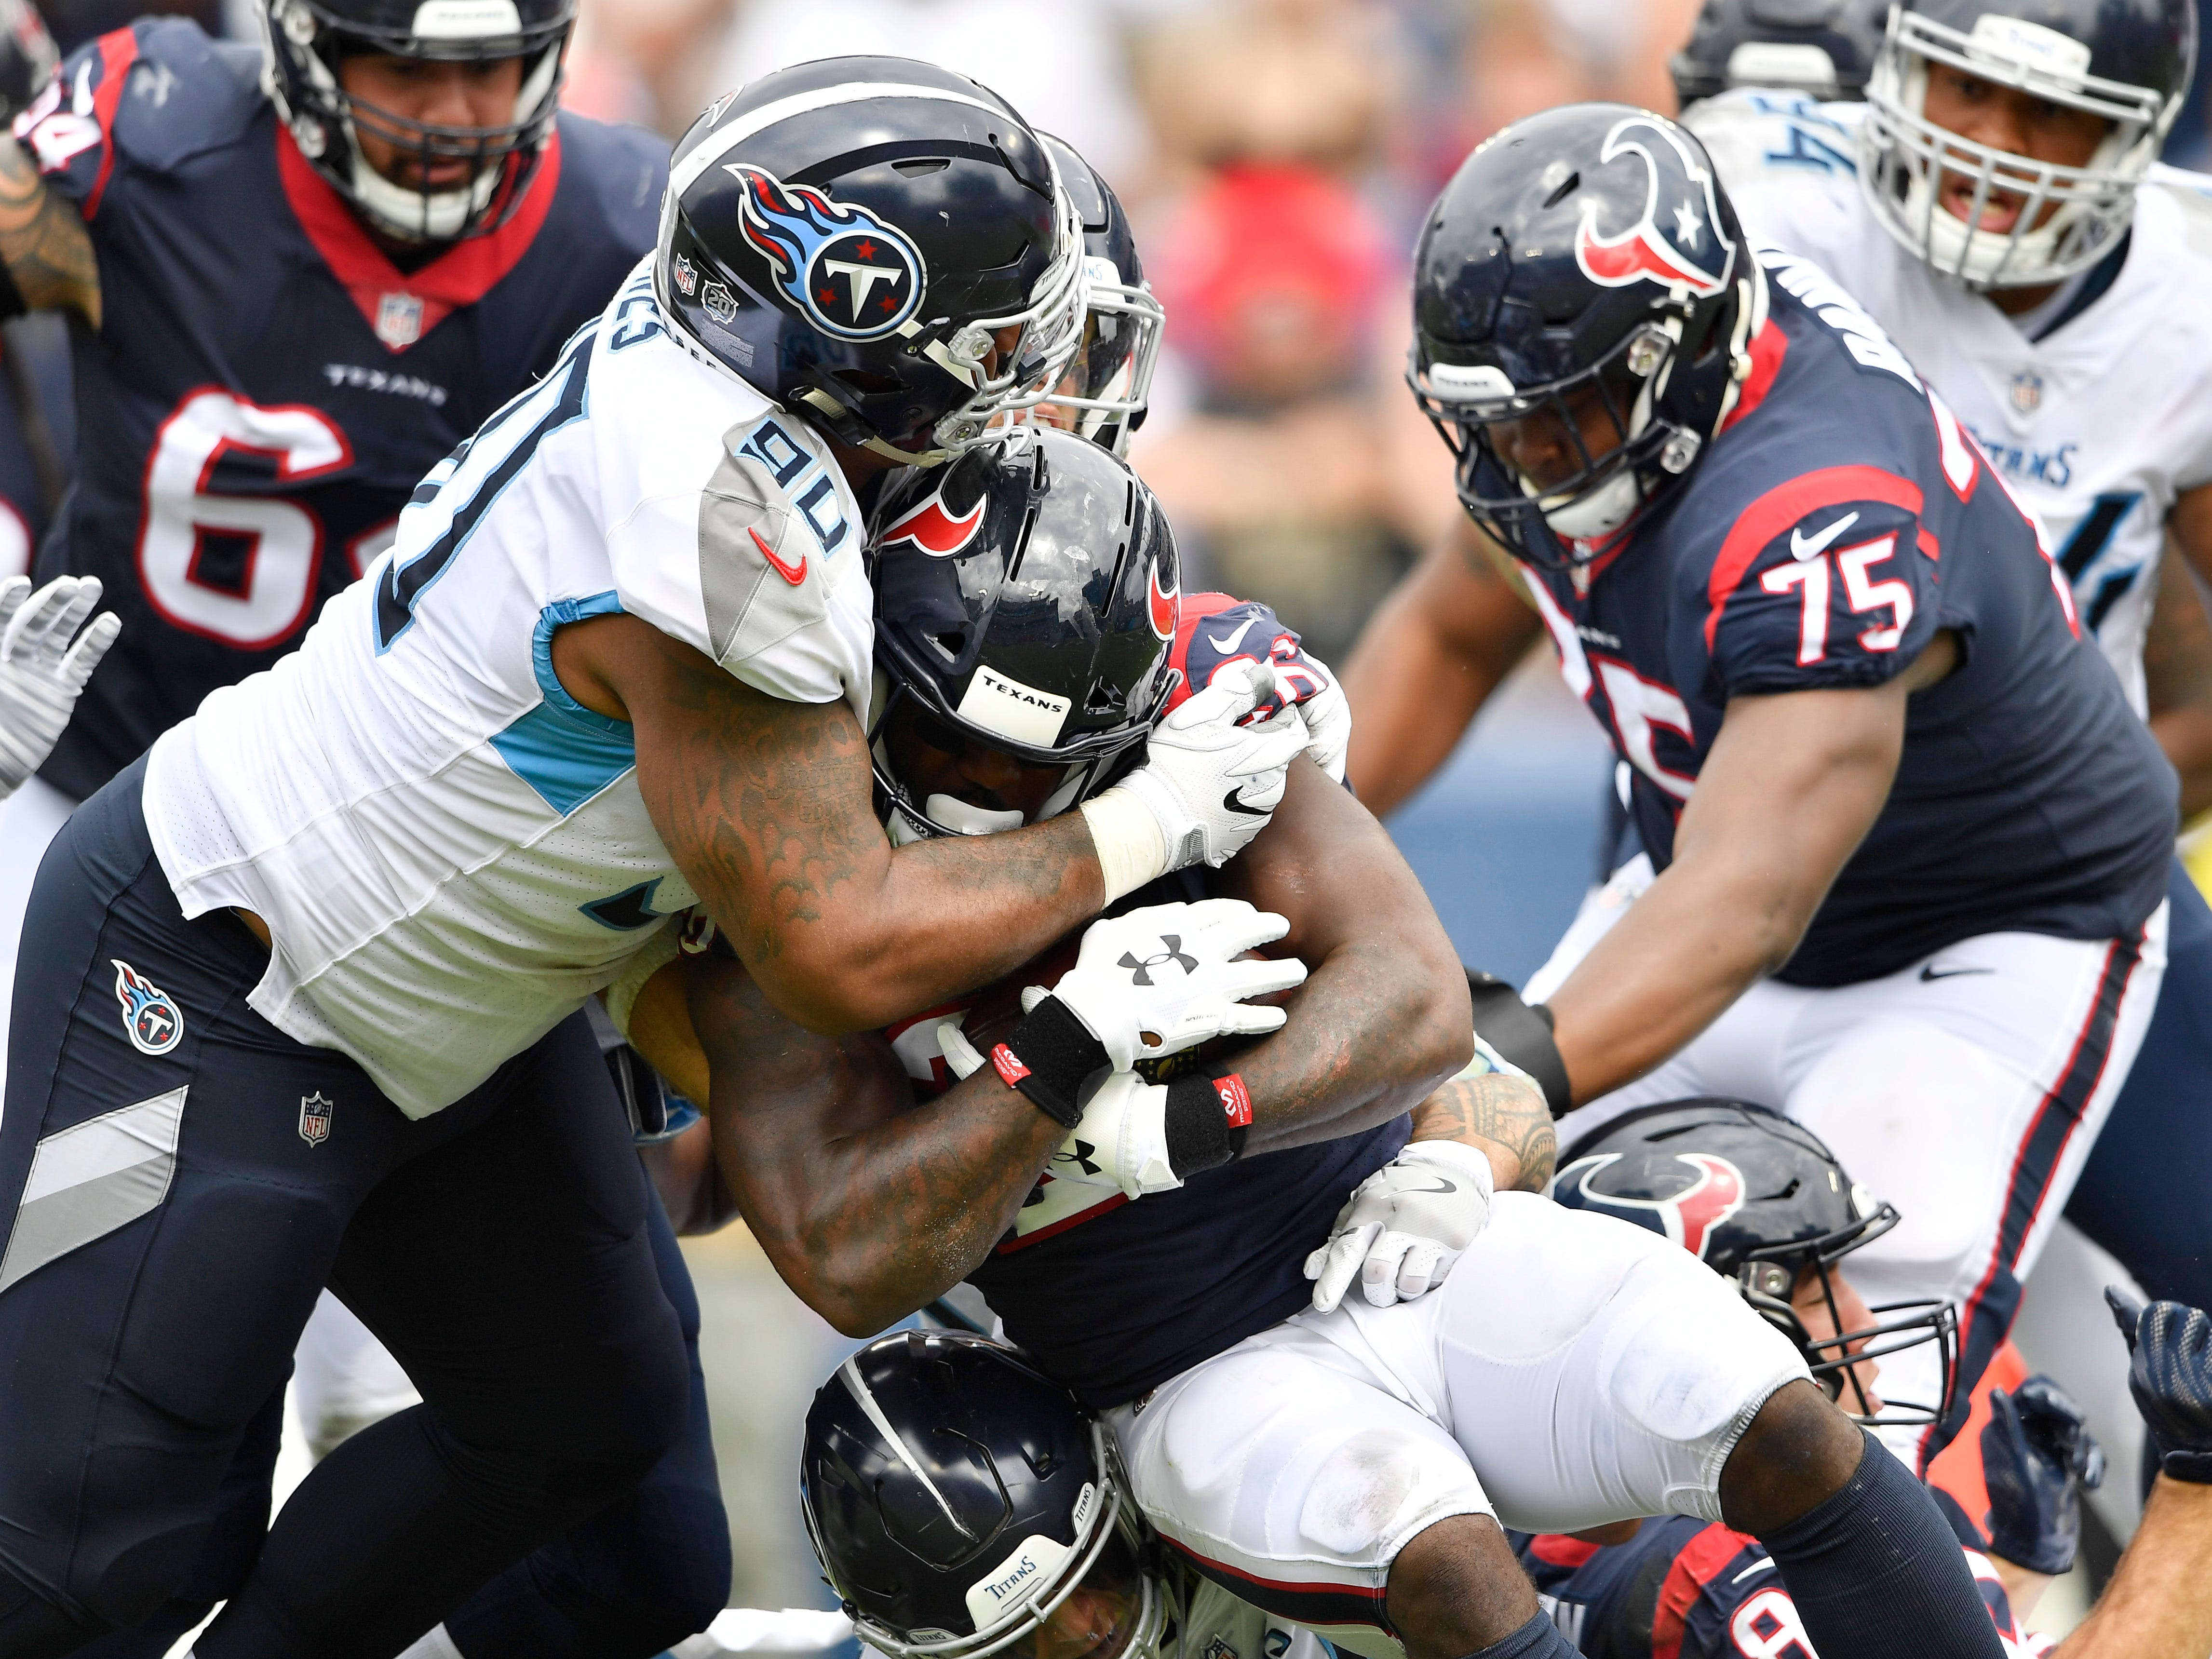 Titans defensive tackle DaQuan Jones (90) stops Texans safety Justin Reid (20) in the second half at Nissan Stadium Sunday, Sept. 16, 2018, in Nashville, Tenn.